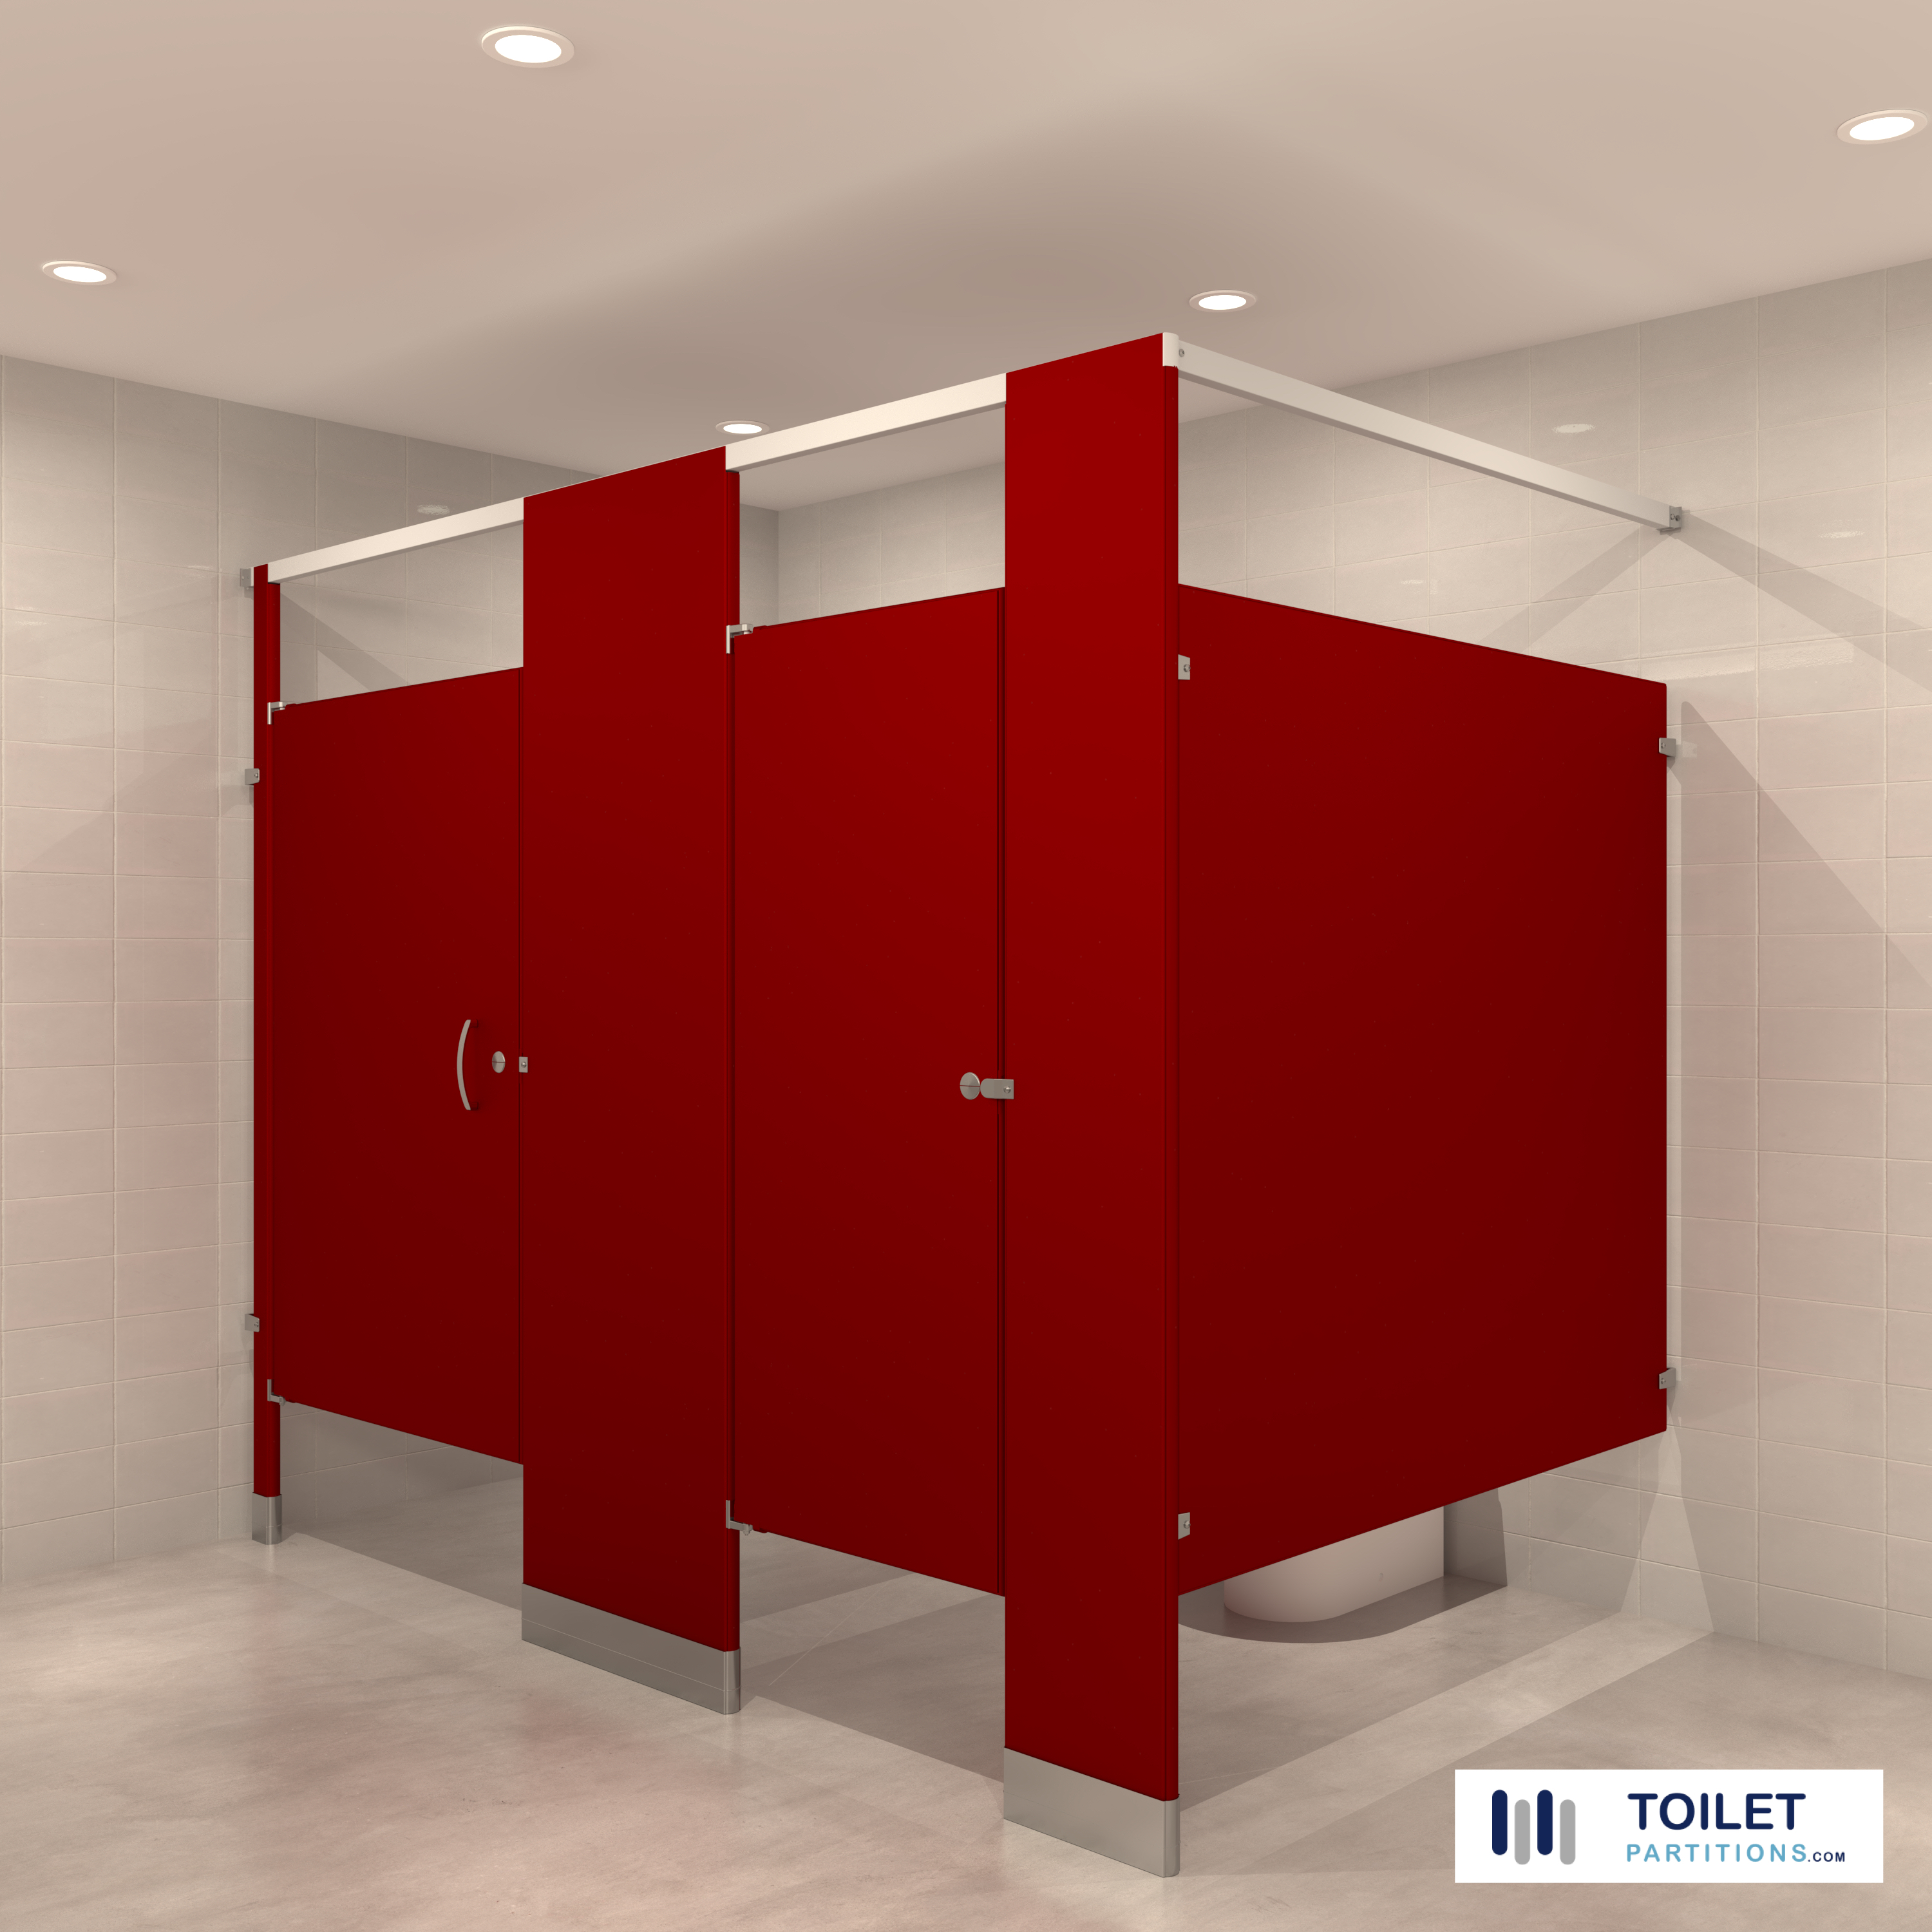 Toilet-Partitions-Ruby-Red-by-Toiletpartitions